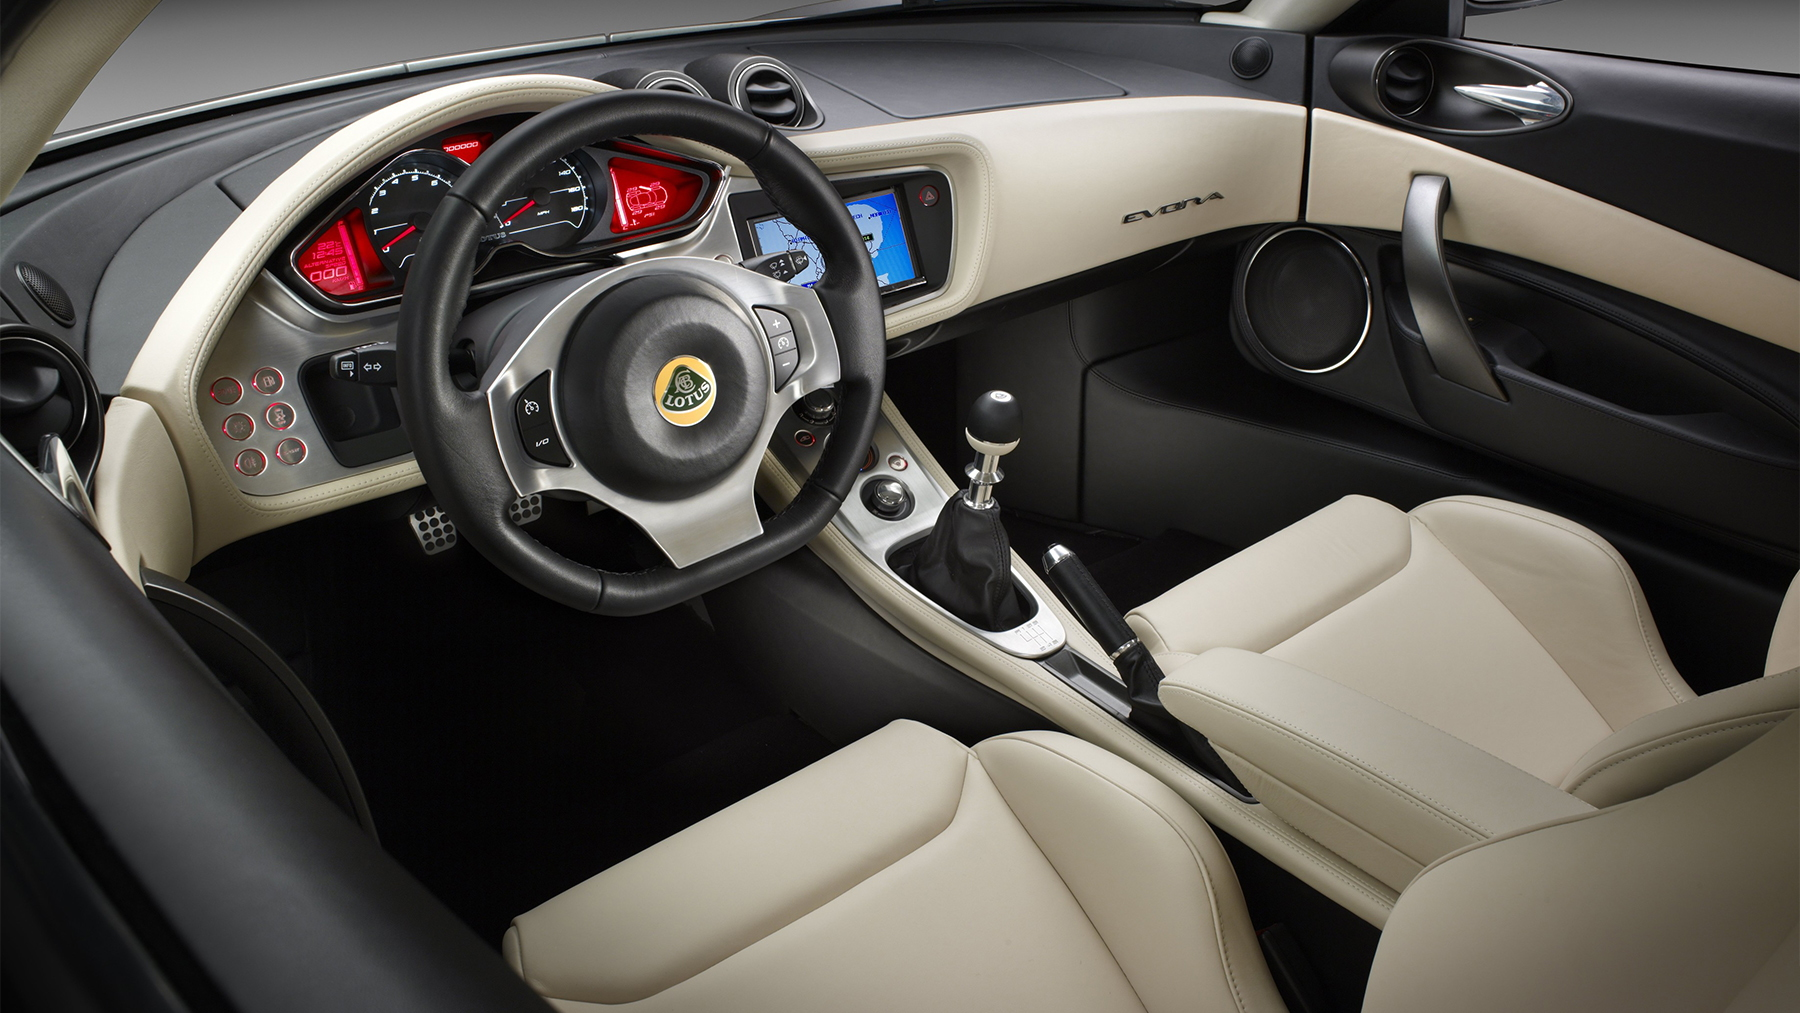 2010 lotus evora may 2009 008